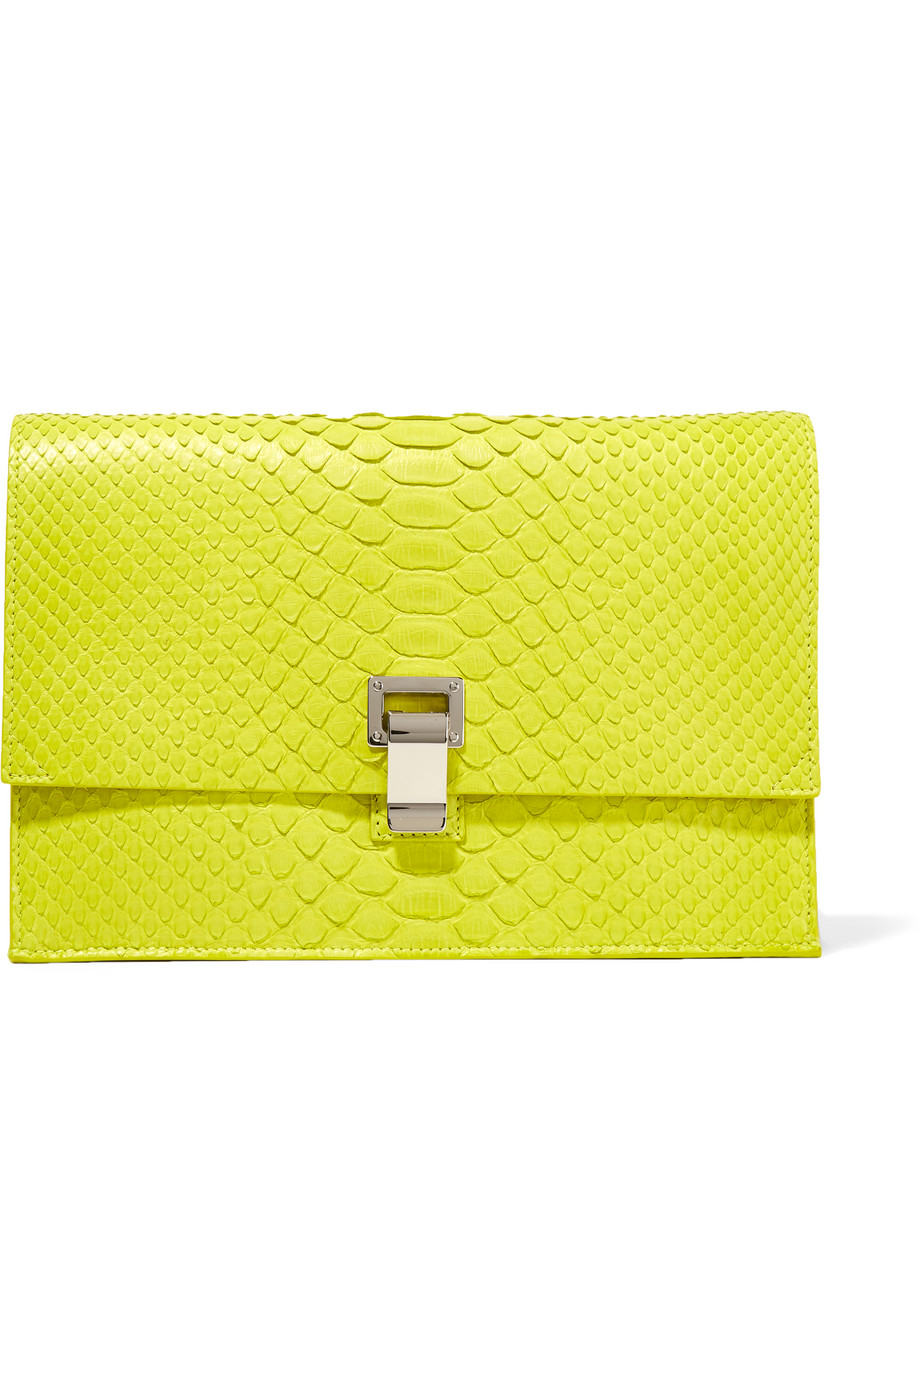 Proenza Schouler The Lunch Bag Small Python Clutch, Chartreuse, Women's, Size: One Size